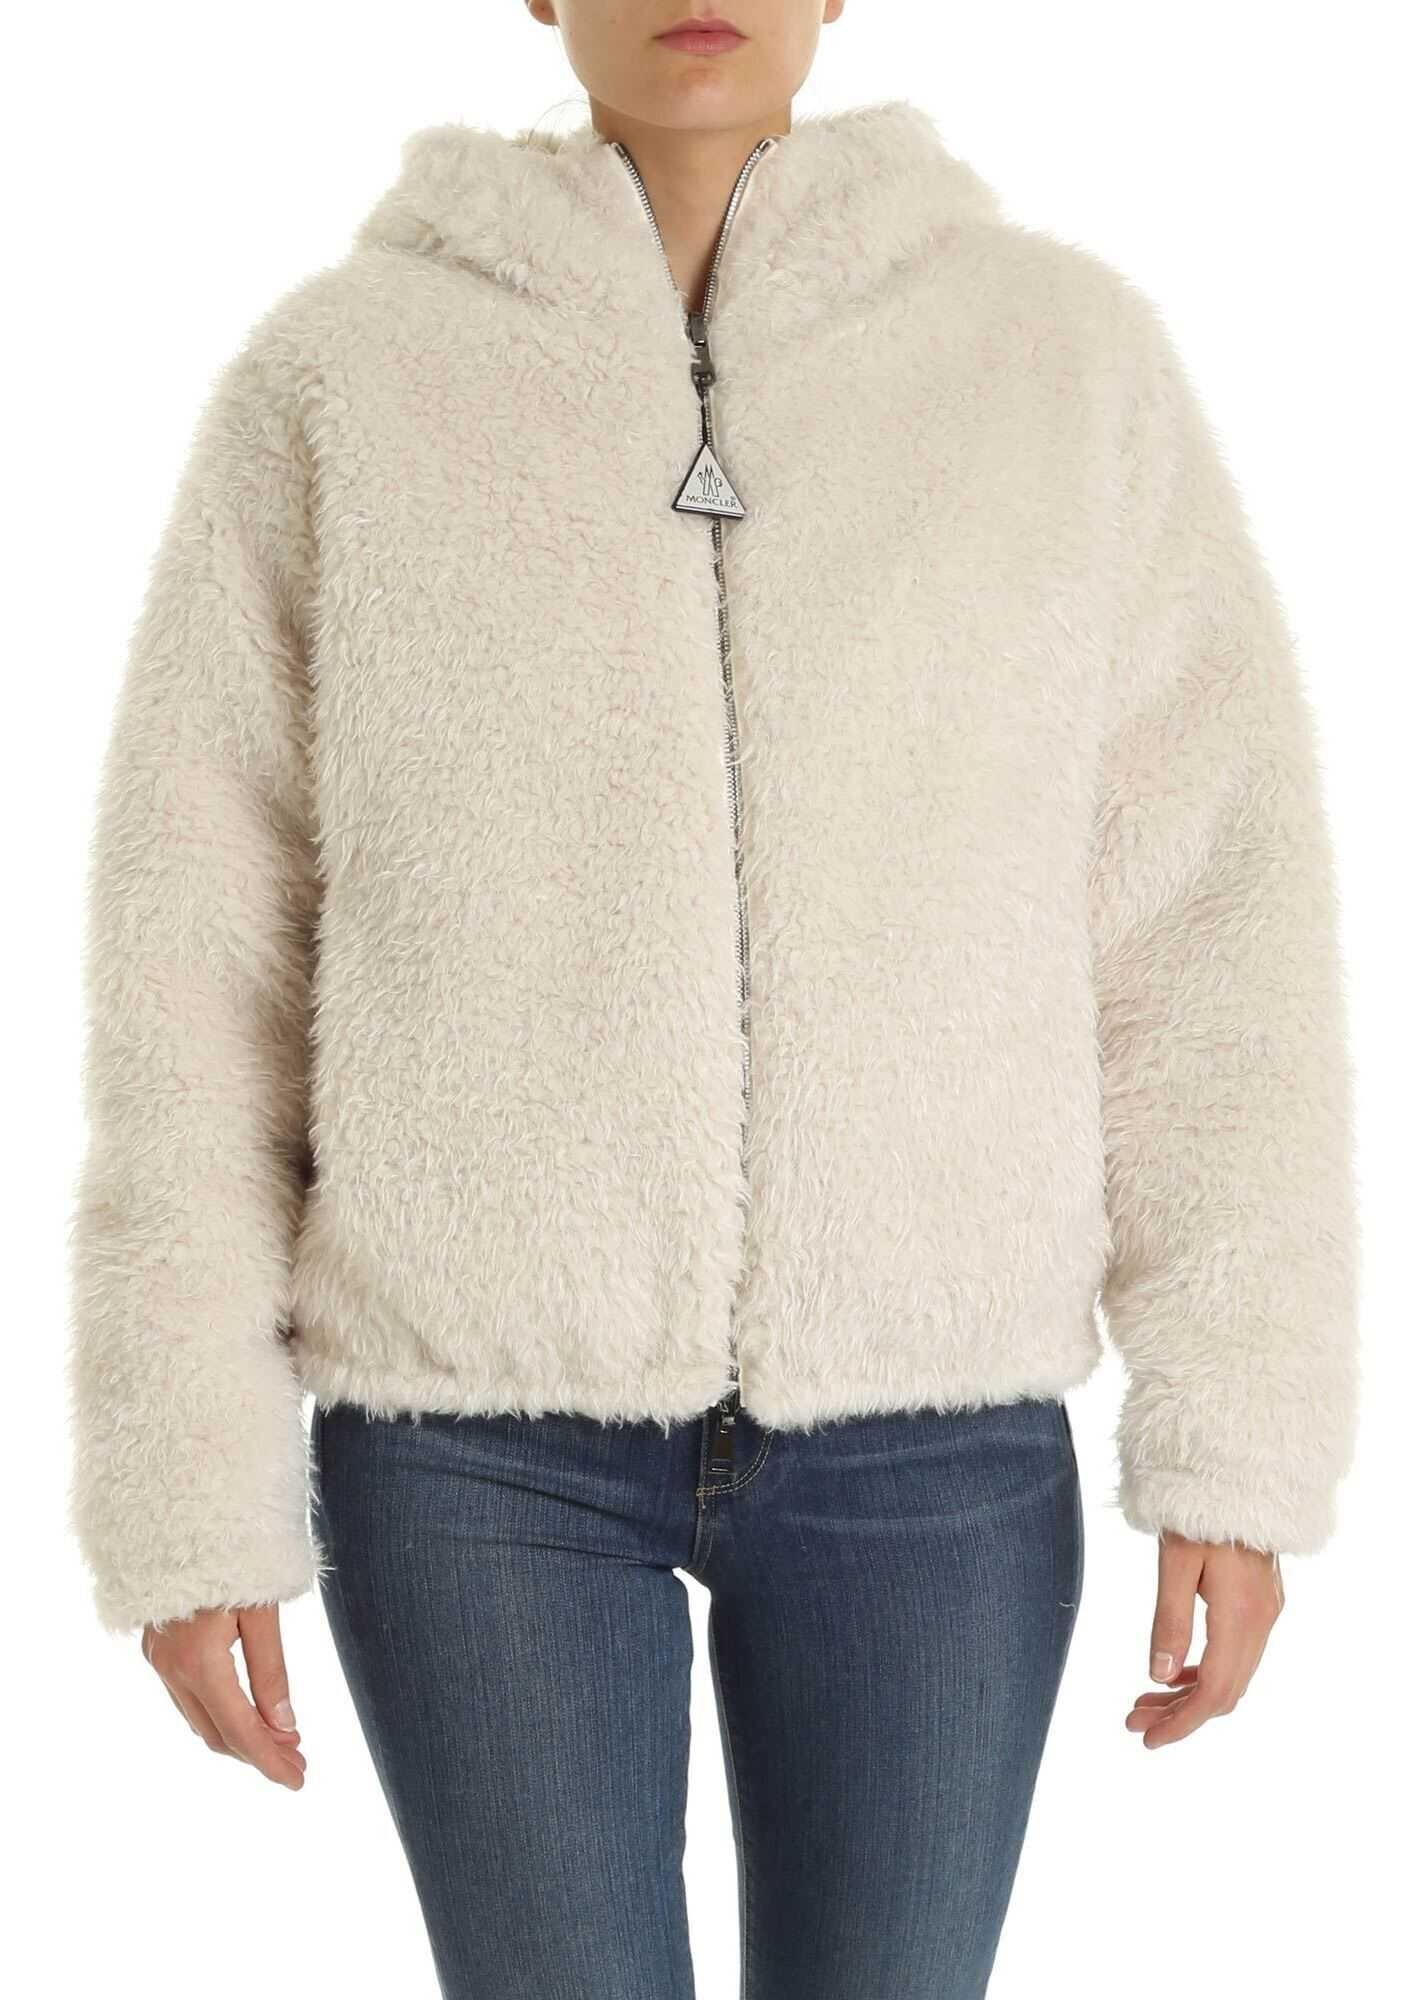 Kolima Eco-Fur In Ivory Color thumbnail